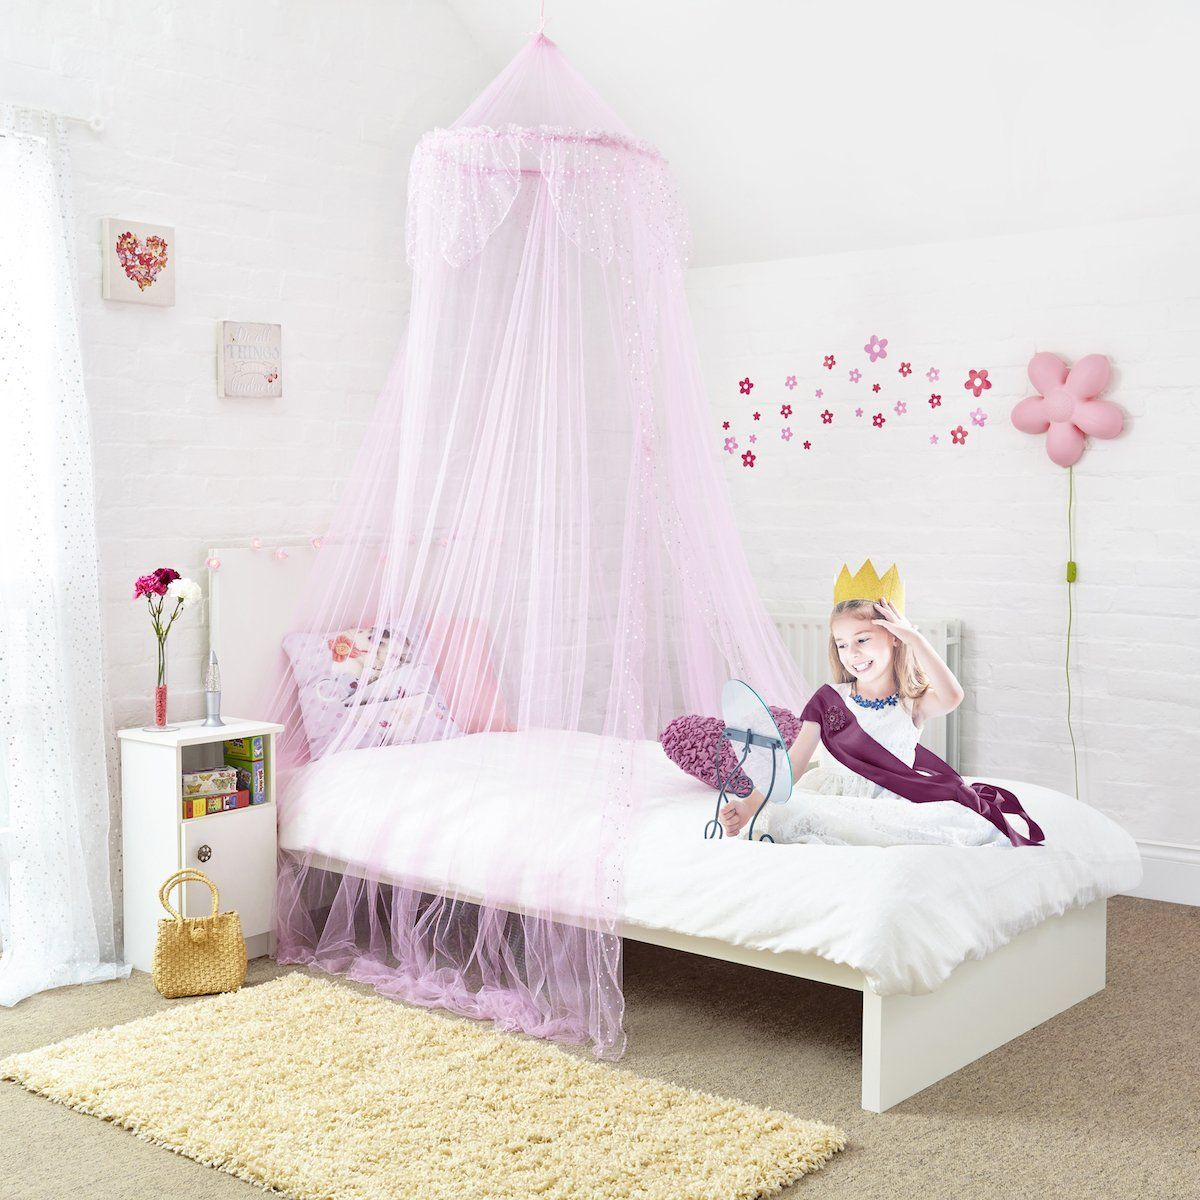 Childrens bed canopy & 20 Princess Bed Canopy - Beautiful Silver Sequined Childrens Bed ...